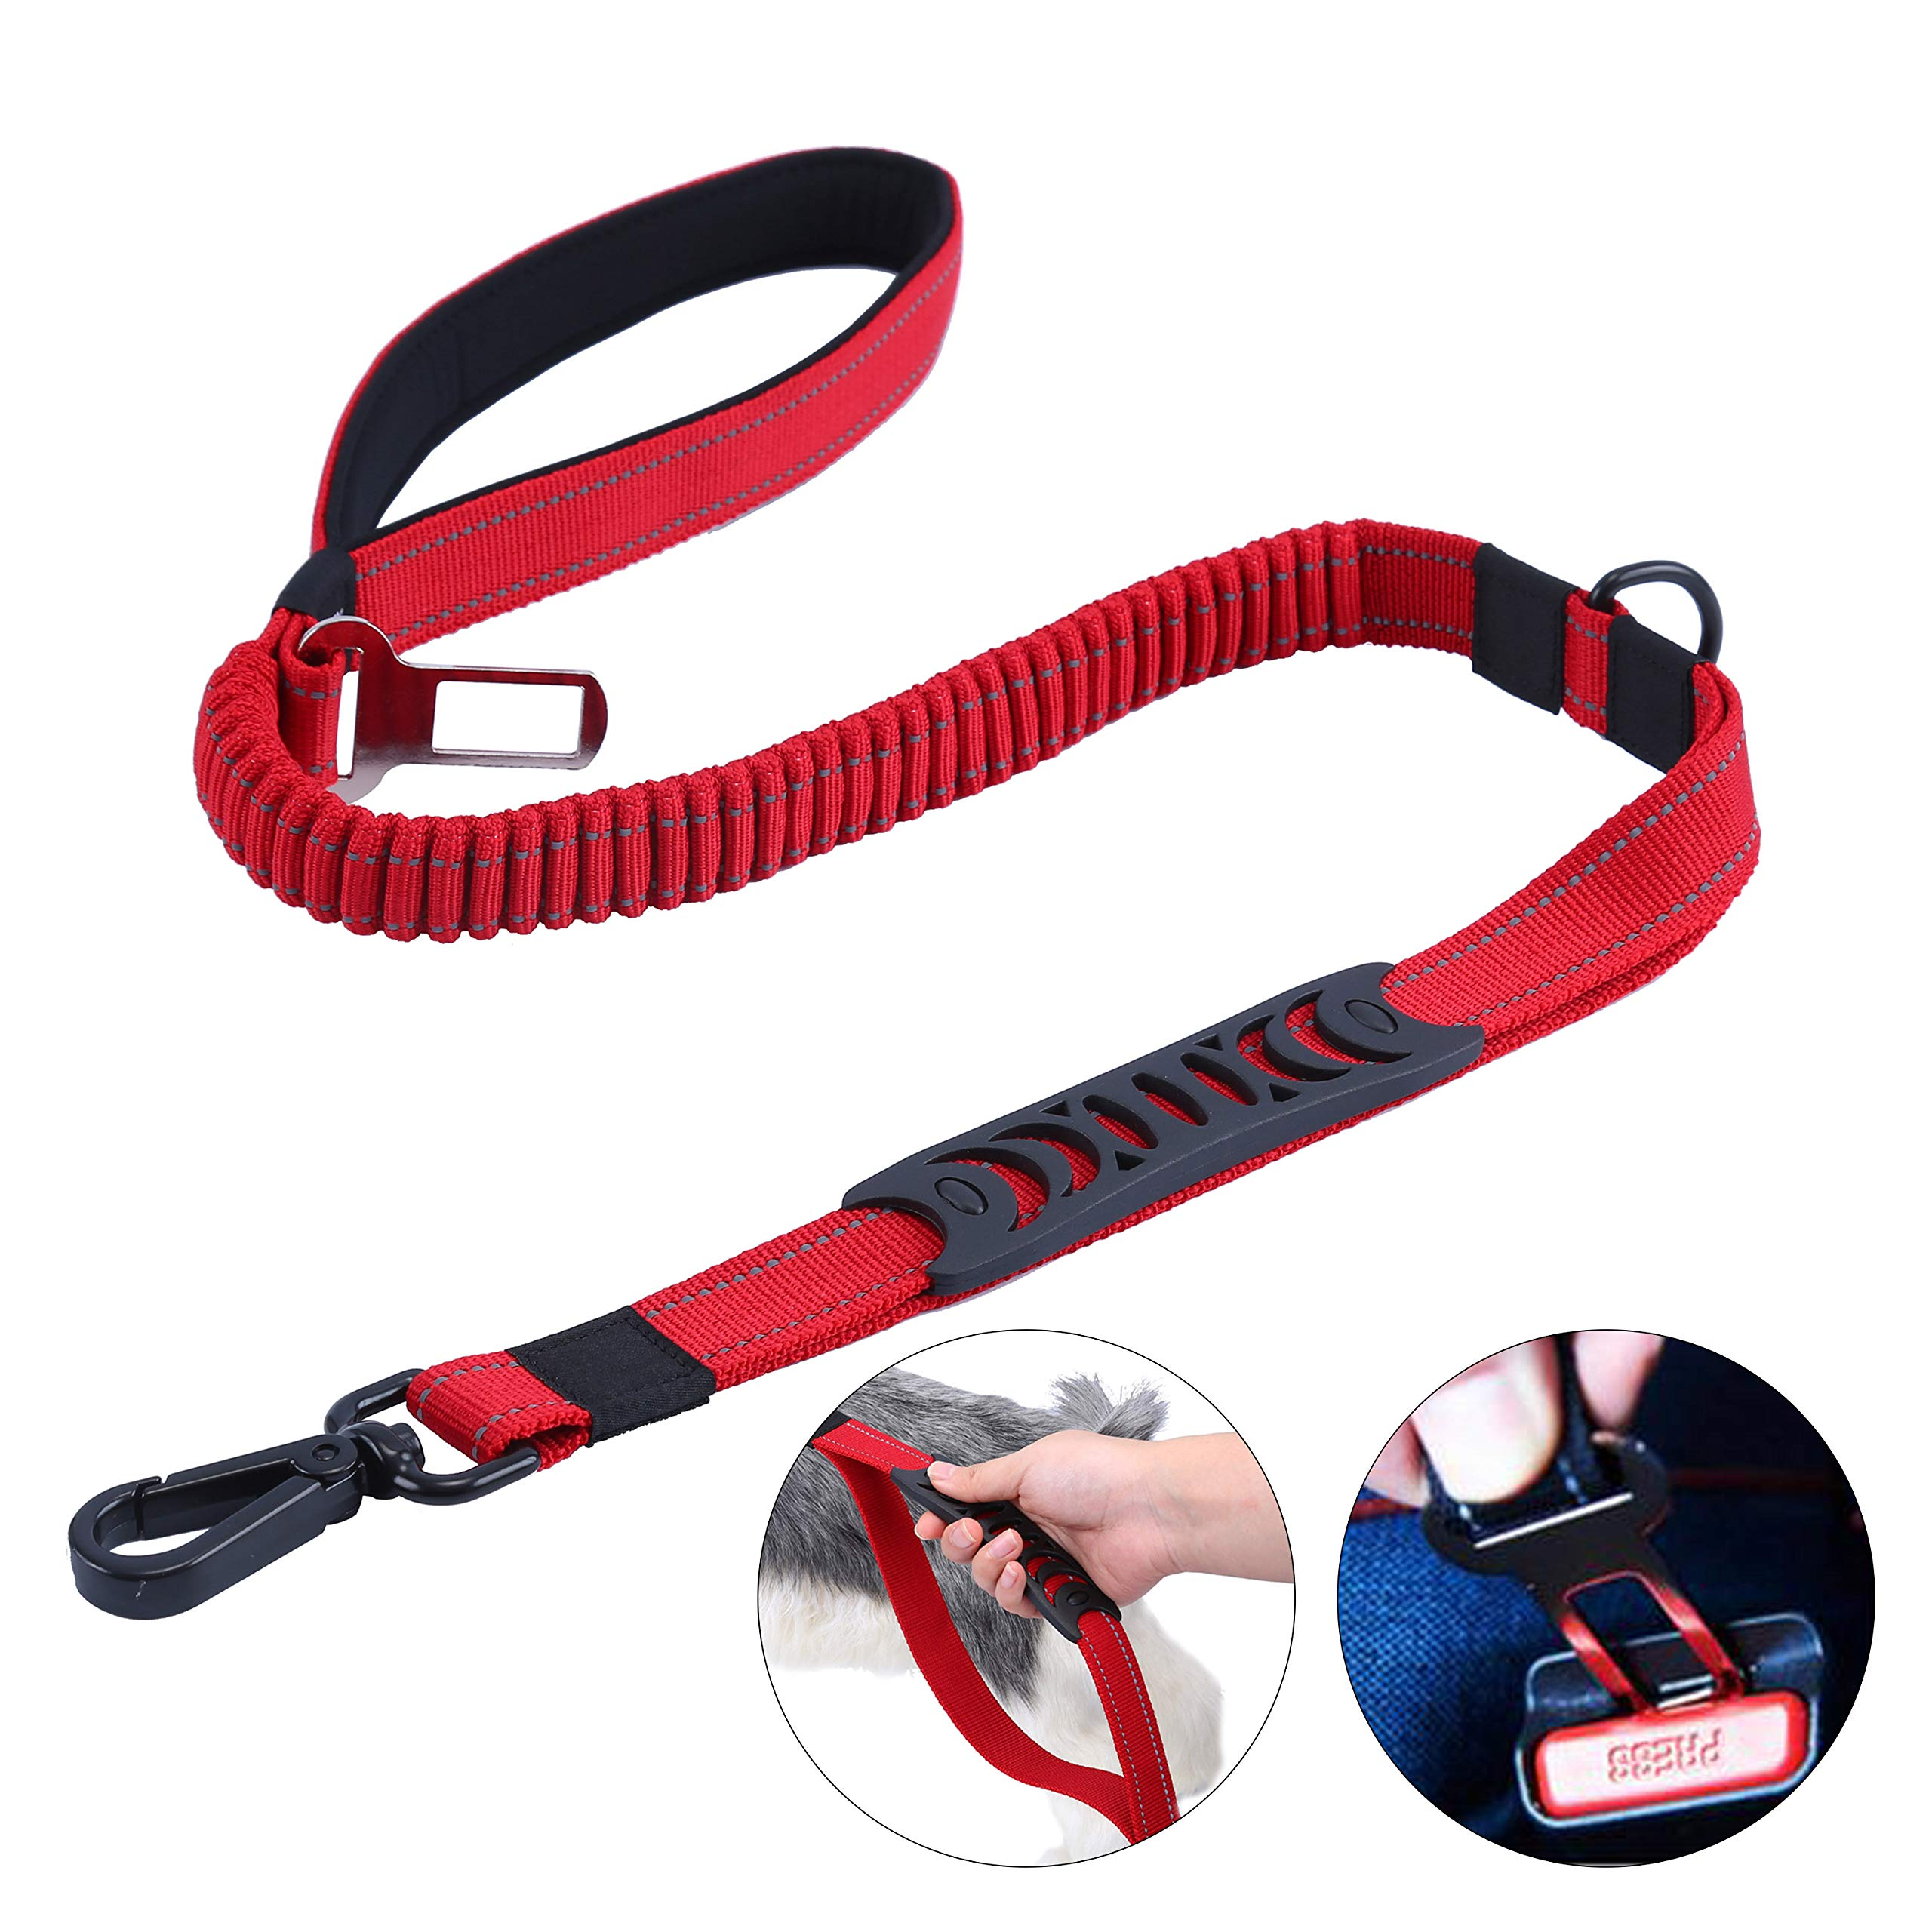 HAPPY HACHI Bungee Dog Lead Shock Absorber, Strong Leash Stretch from 3.6FT to 4.9FT Long with Car Seat Belt Buckle, Reflective Anti Pull Lead for Control Safety Training (Red)